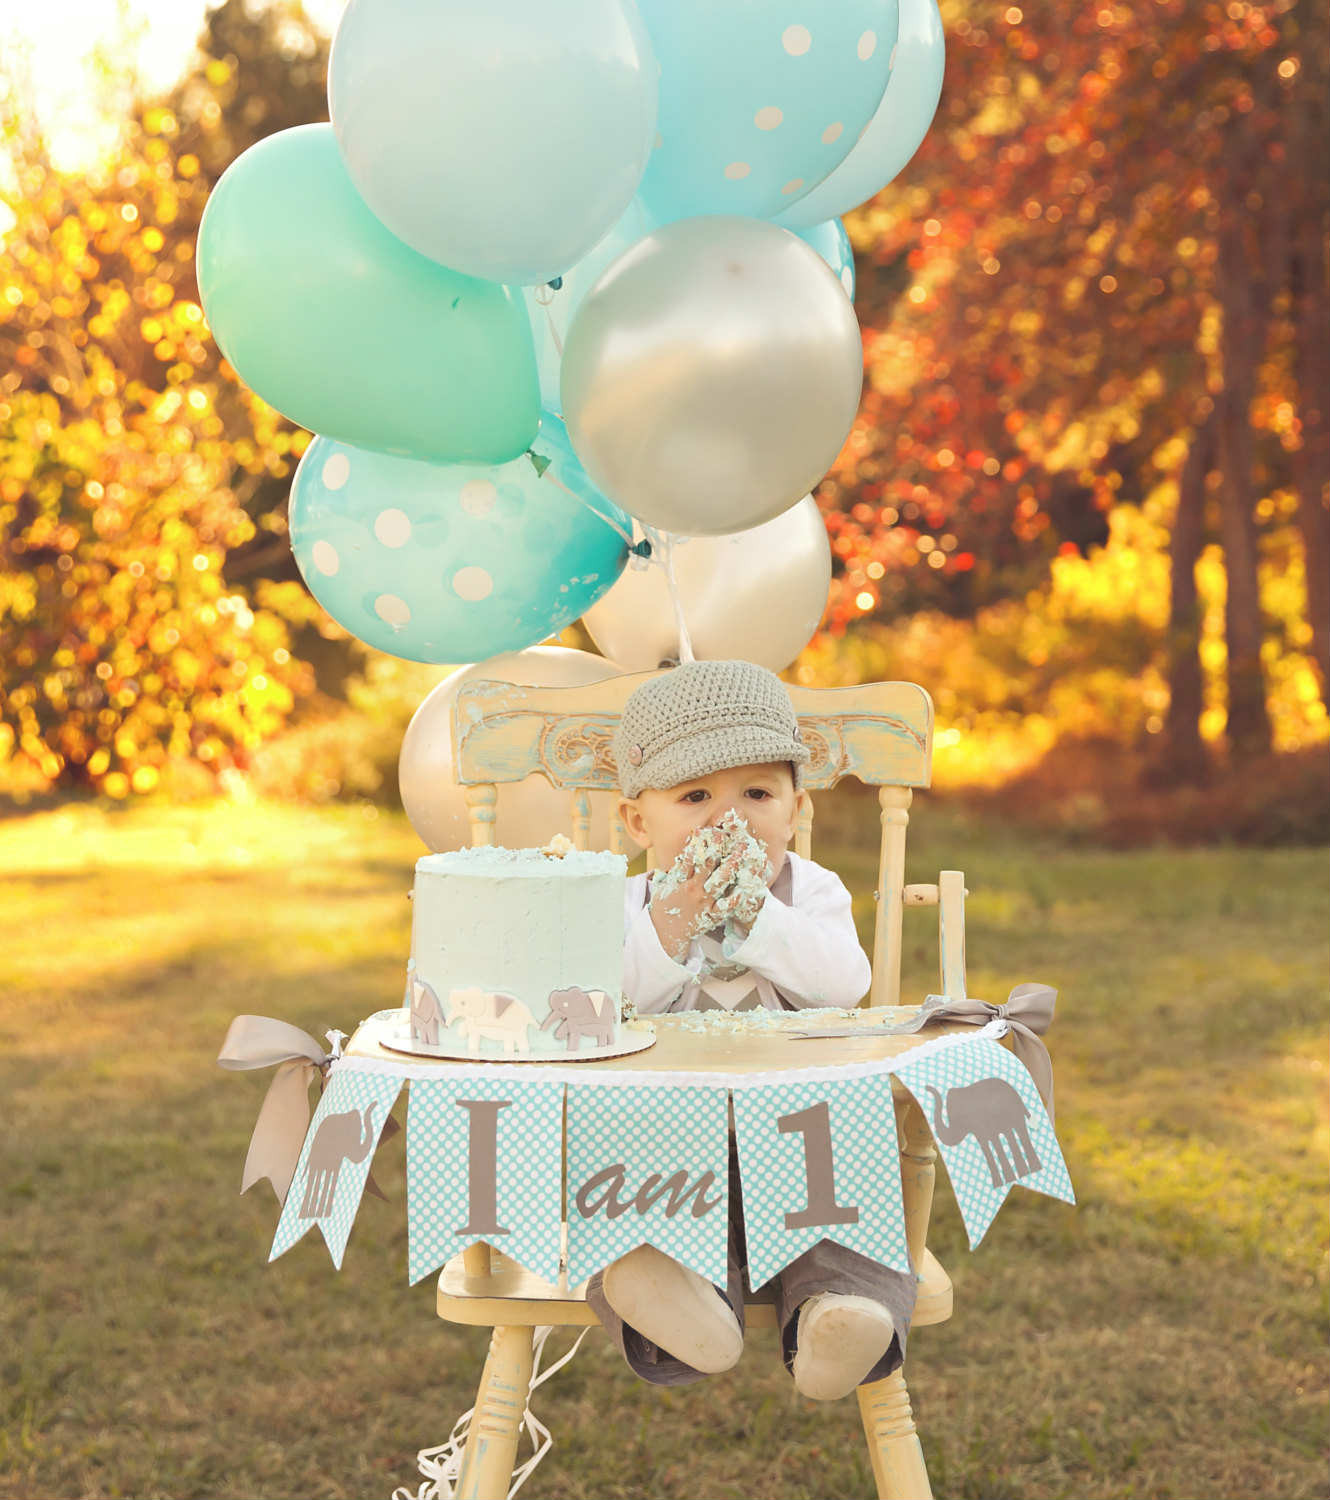 Best ideas about First Birthday Decorations For Boys . Save or Pin First Birthday The time to celebrate is here Now.